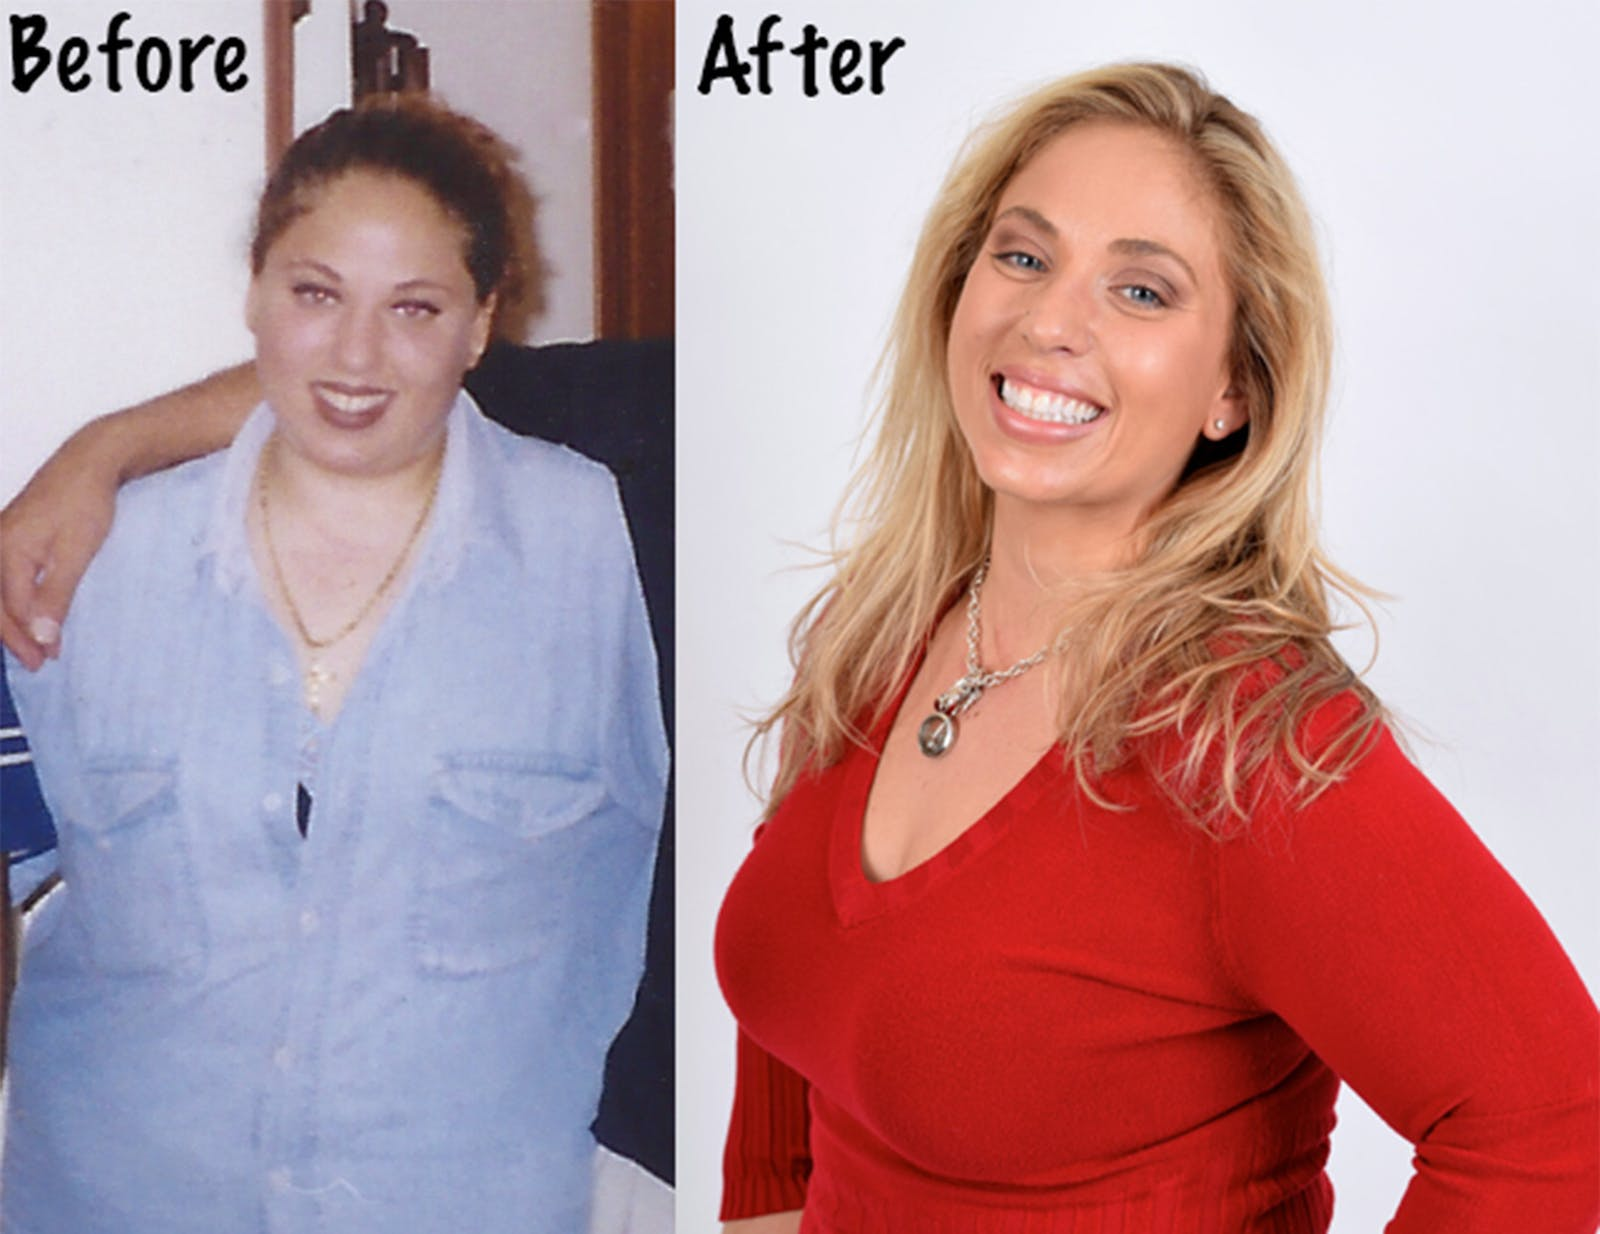 Maintaining A Loss Of Over 100 Pounds On A Low Carb Diet For 17 Years Diet Doctor